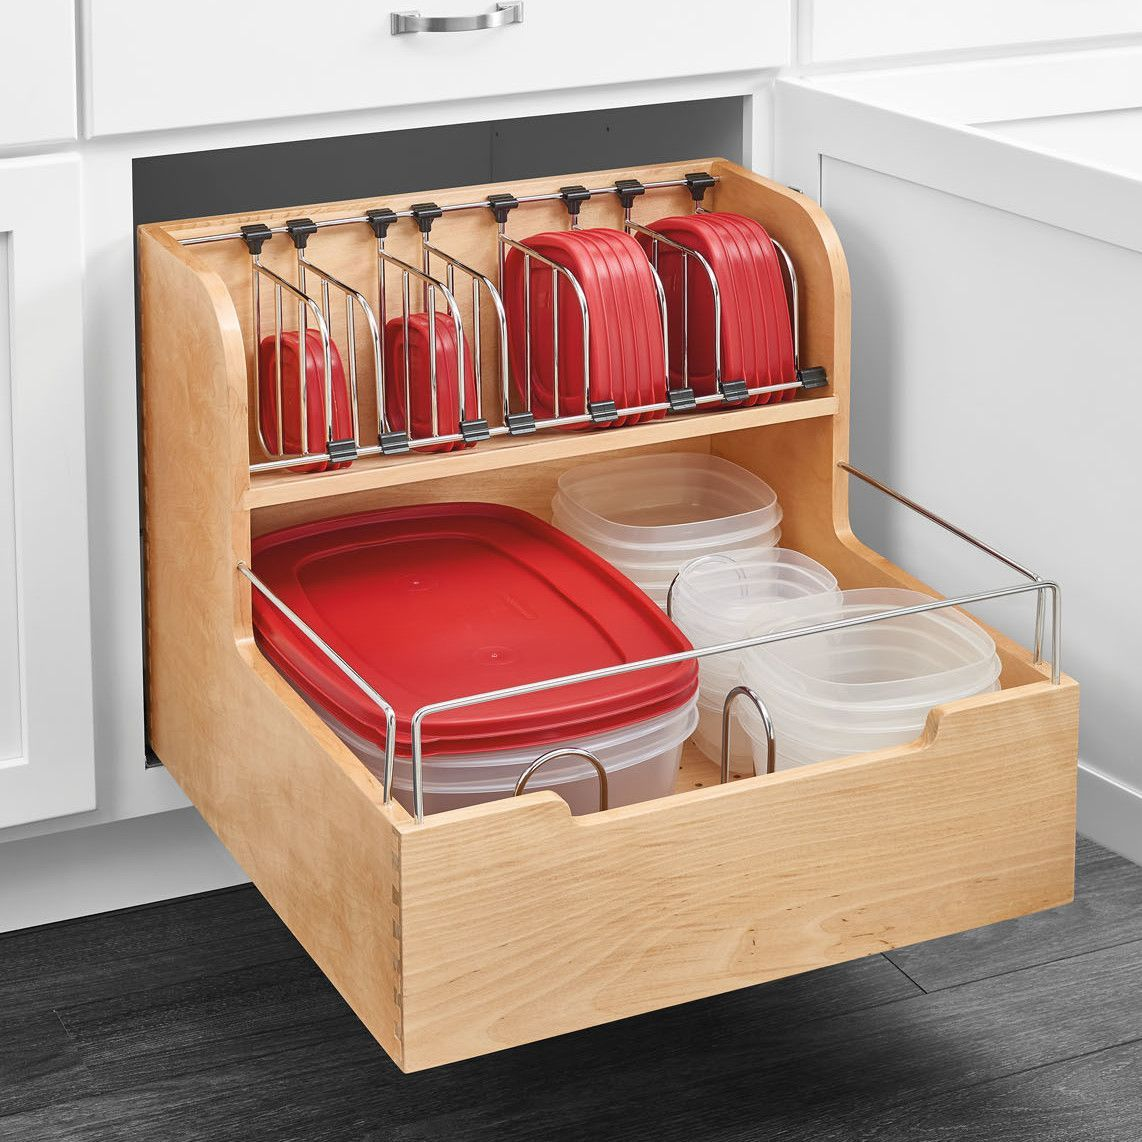 Features includes wood organizer dividers and set of